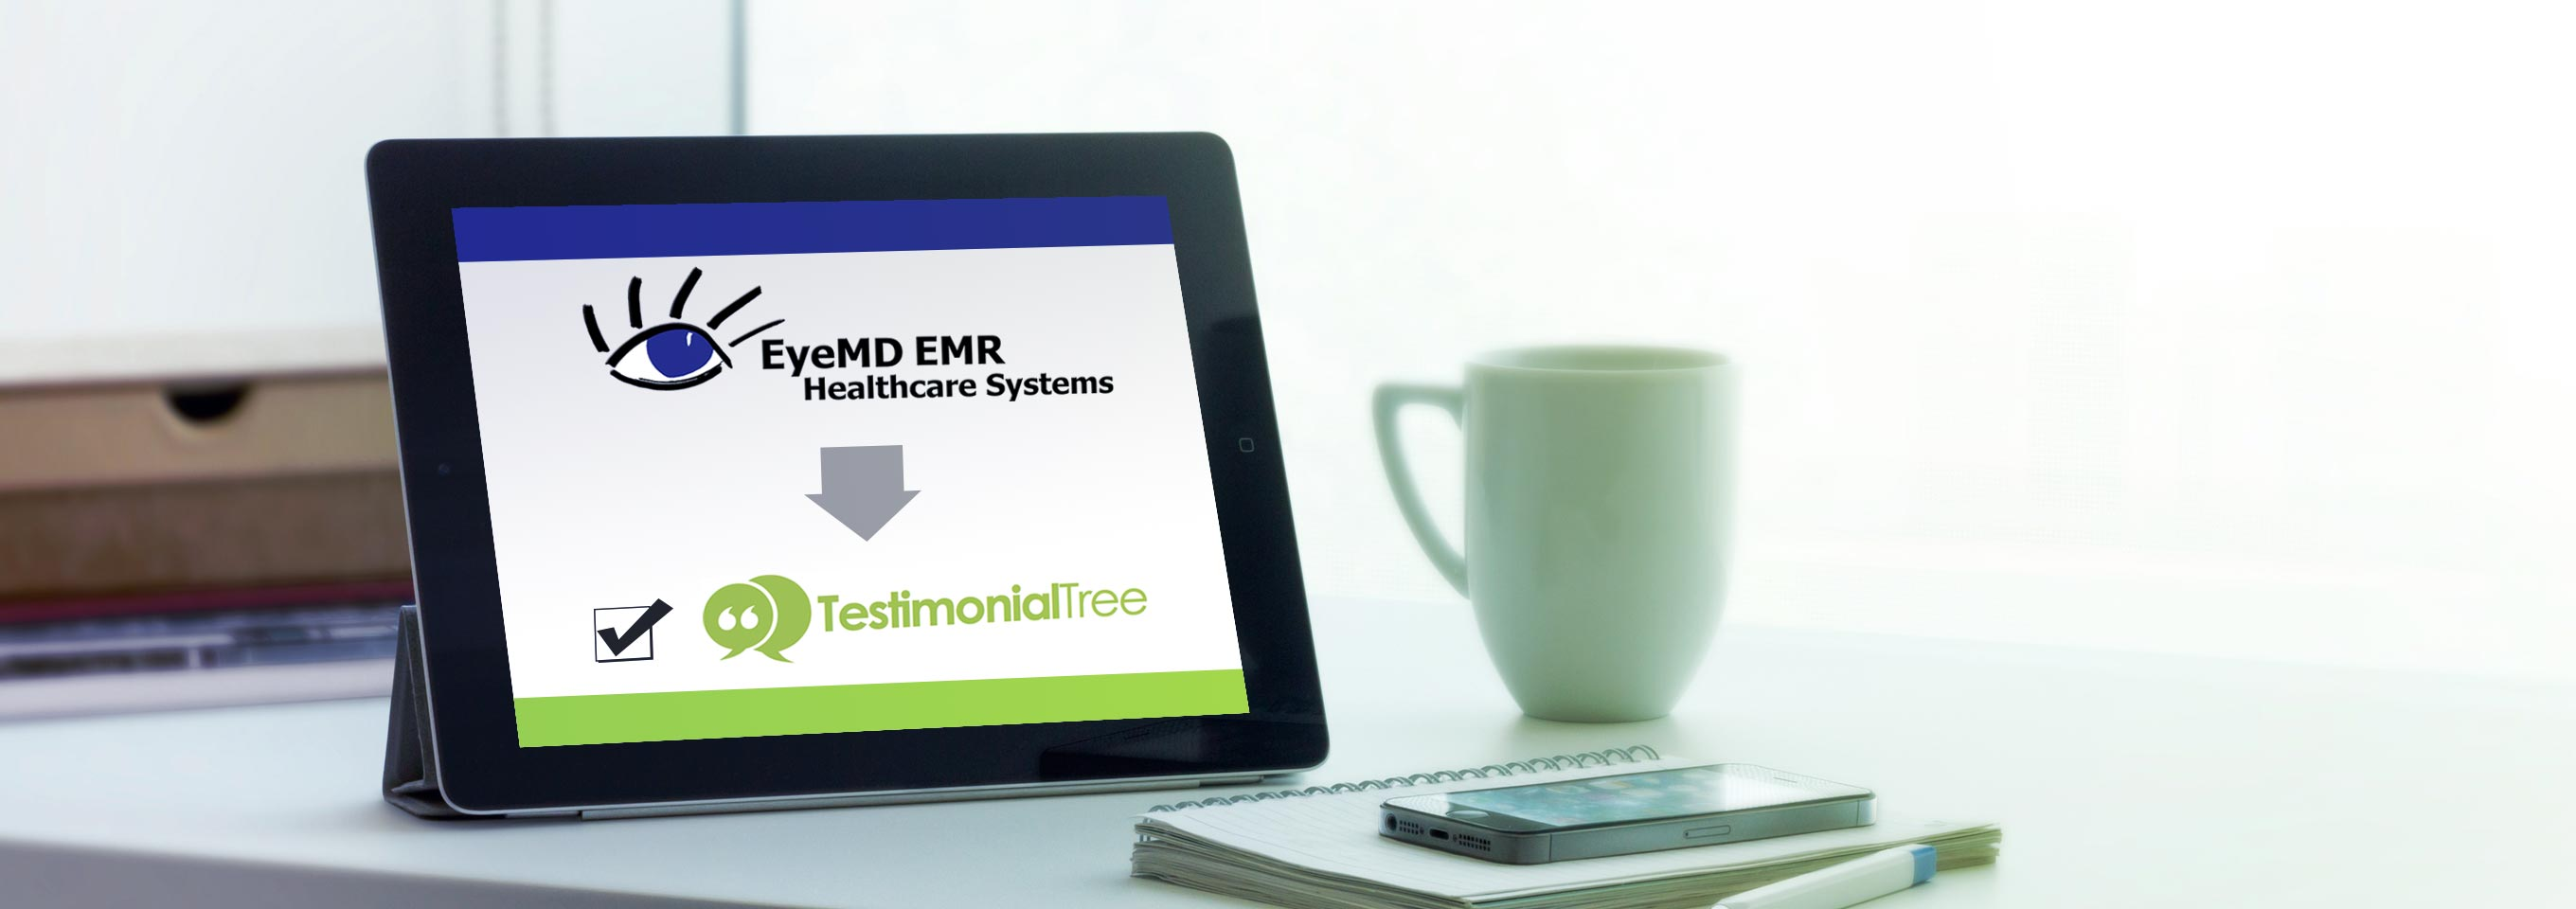 EyeMD-EMR-Testimonial-Tree Online Reputation Management